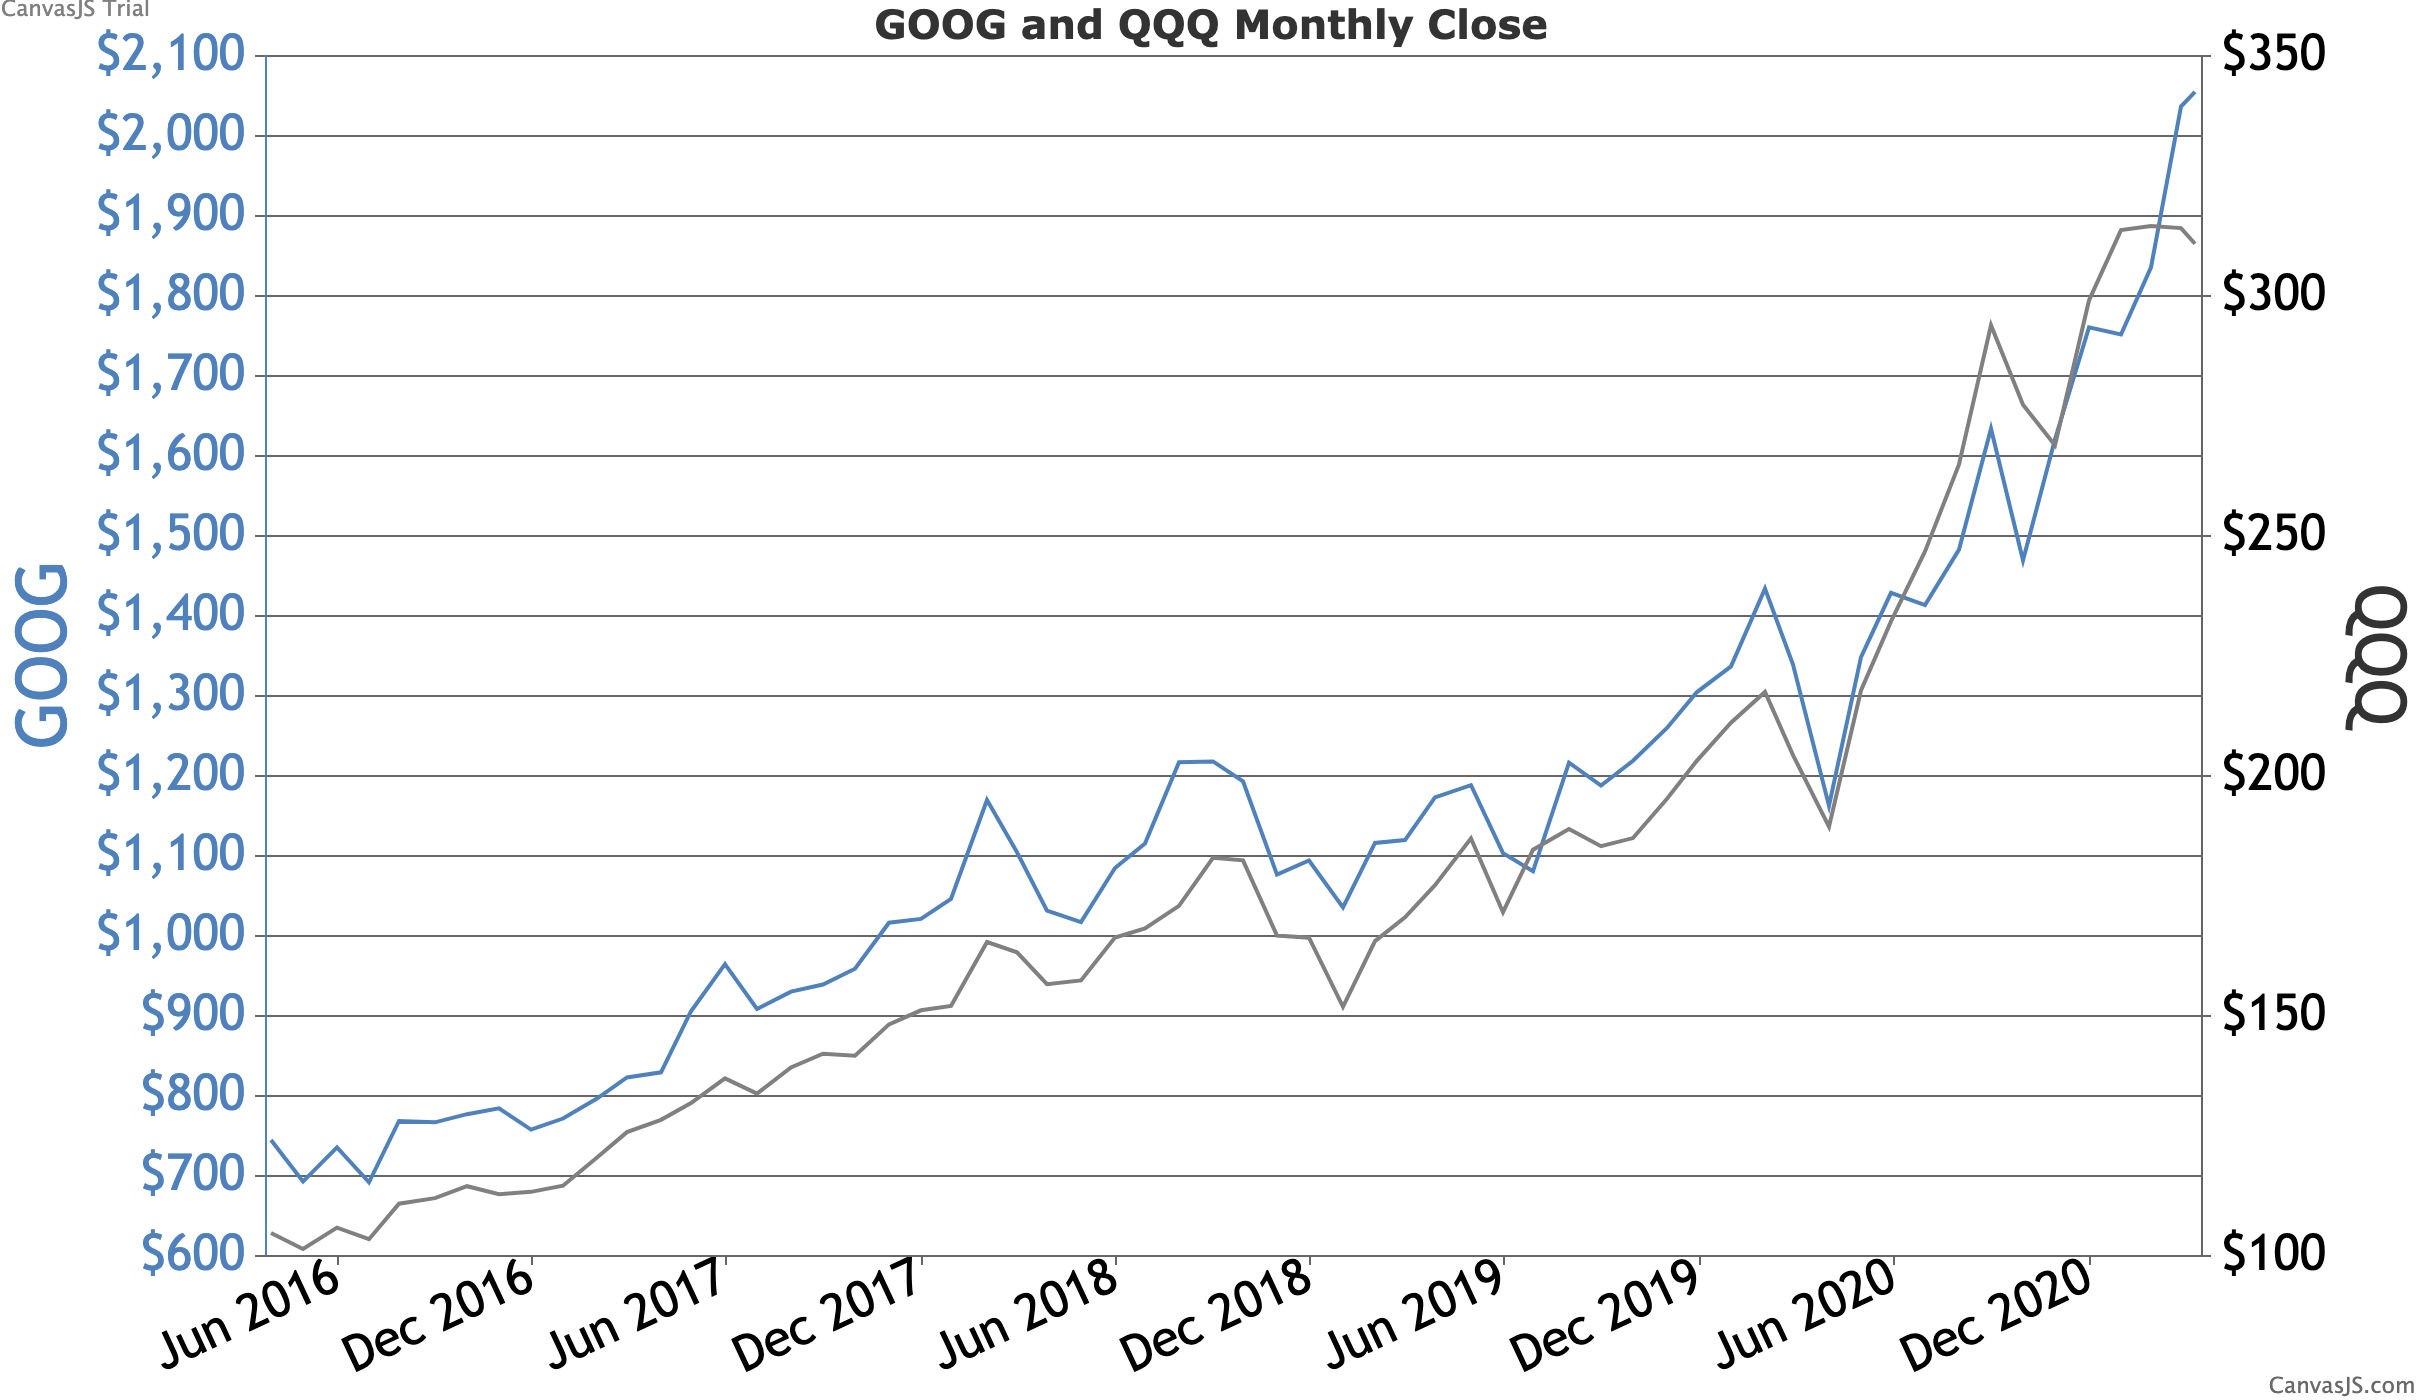 Google stock and QQQ, an index that is heavily tech weighted